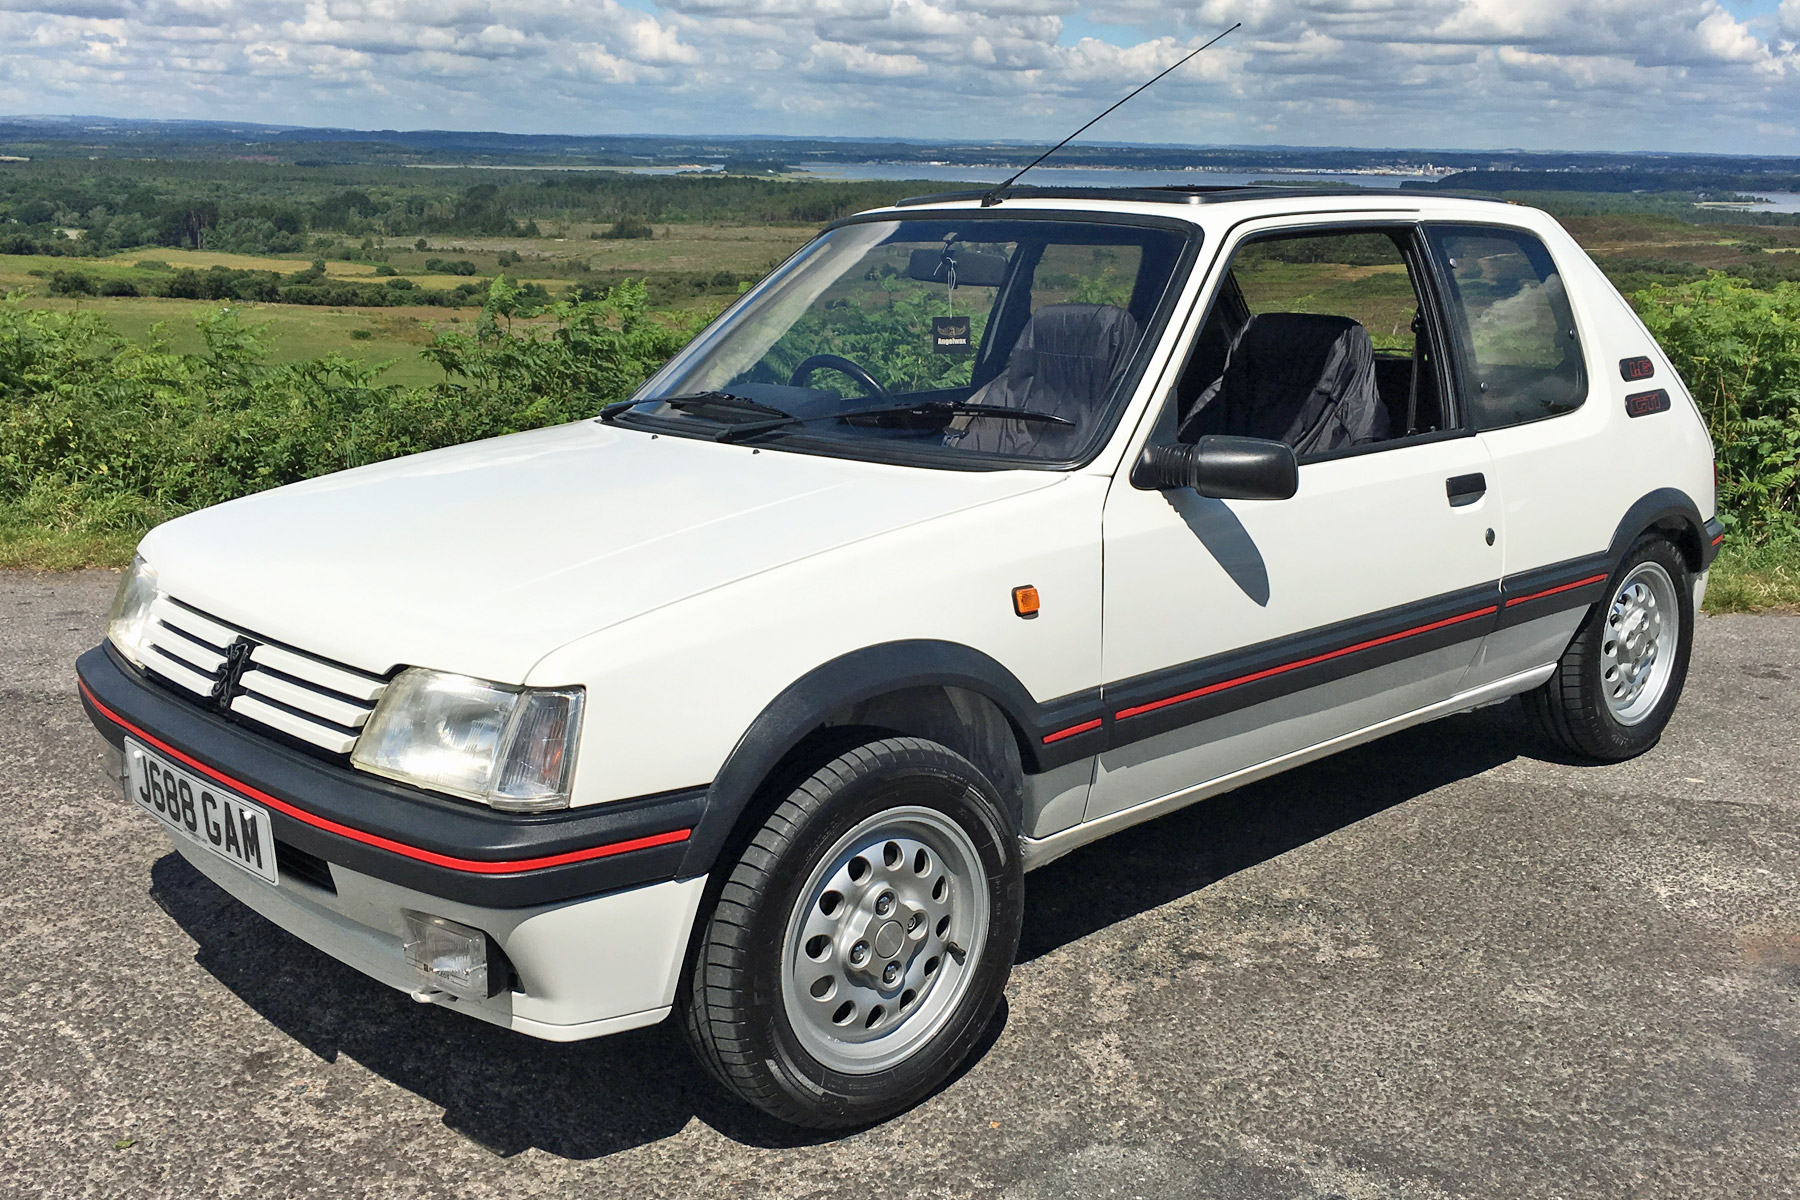 peugeot 205 rallye review retro road test motoring research. Black Bedroom Furniture Sets. Home Design Ideas